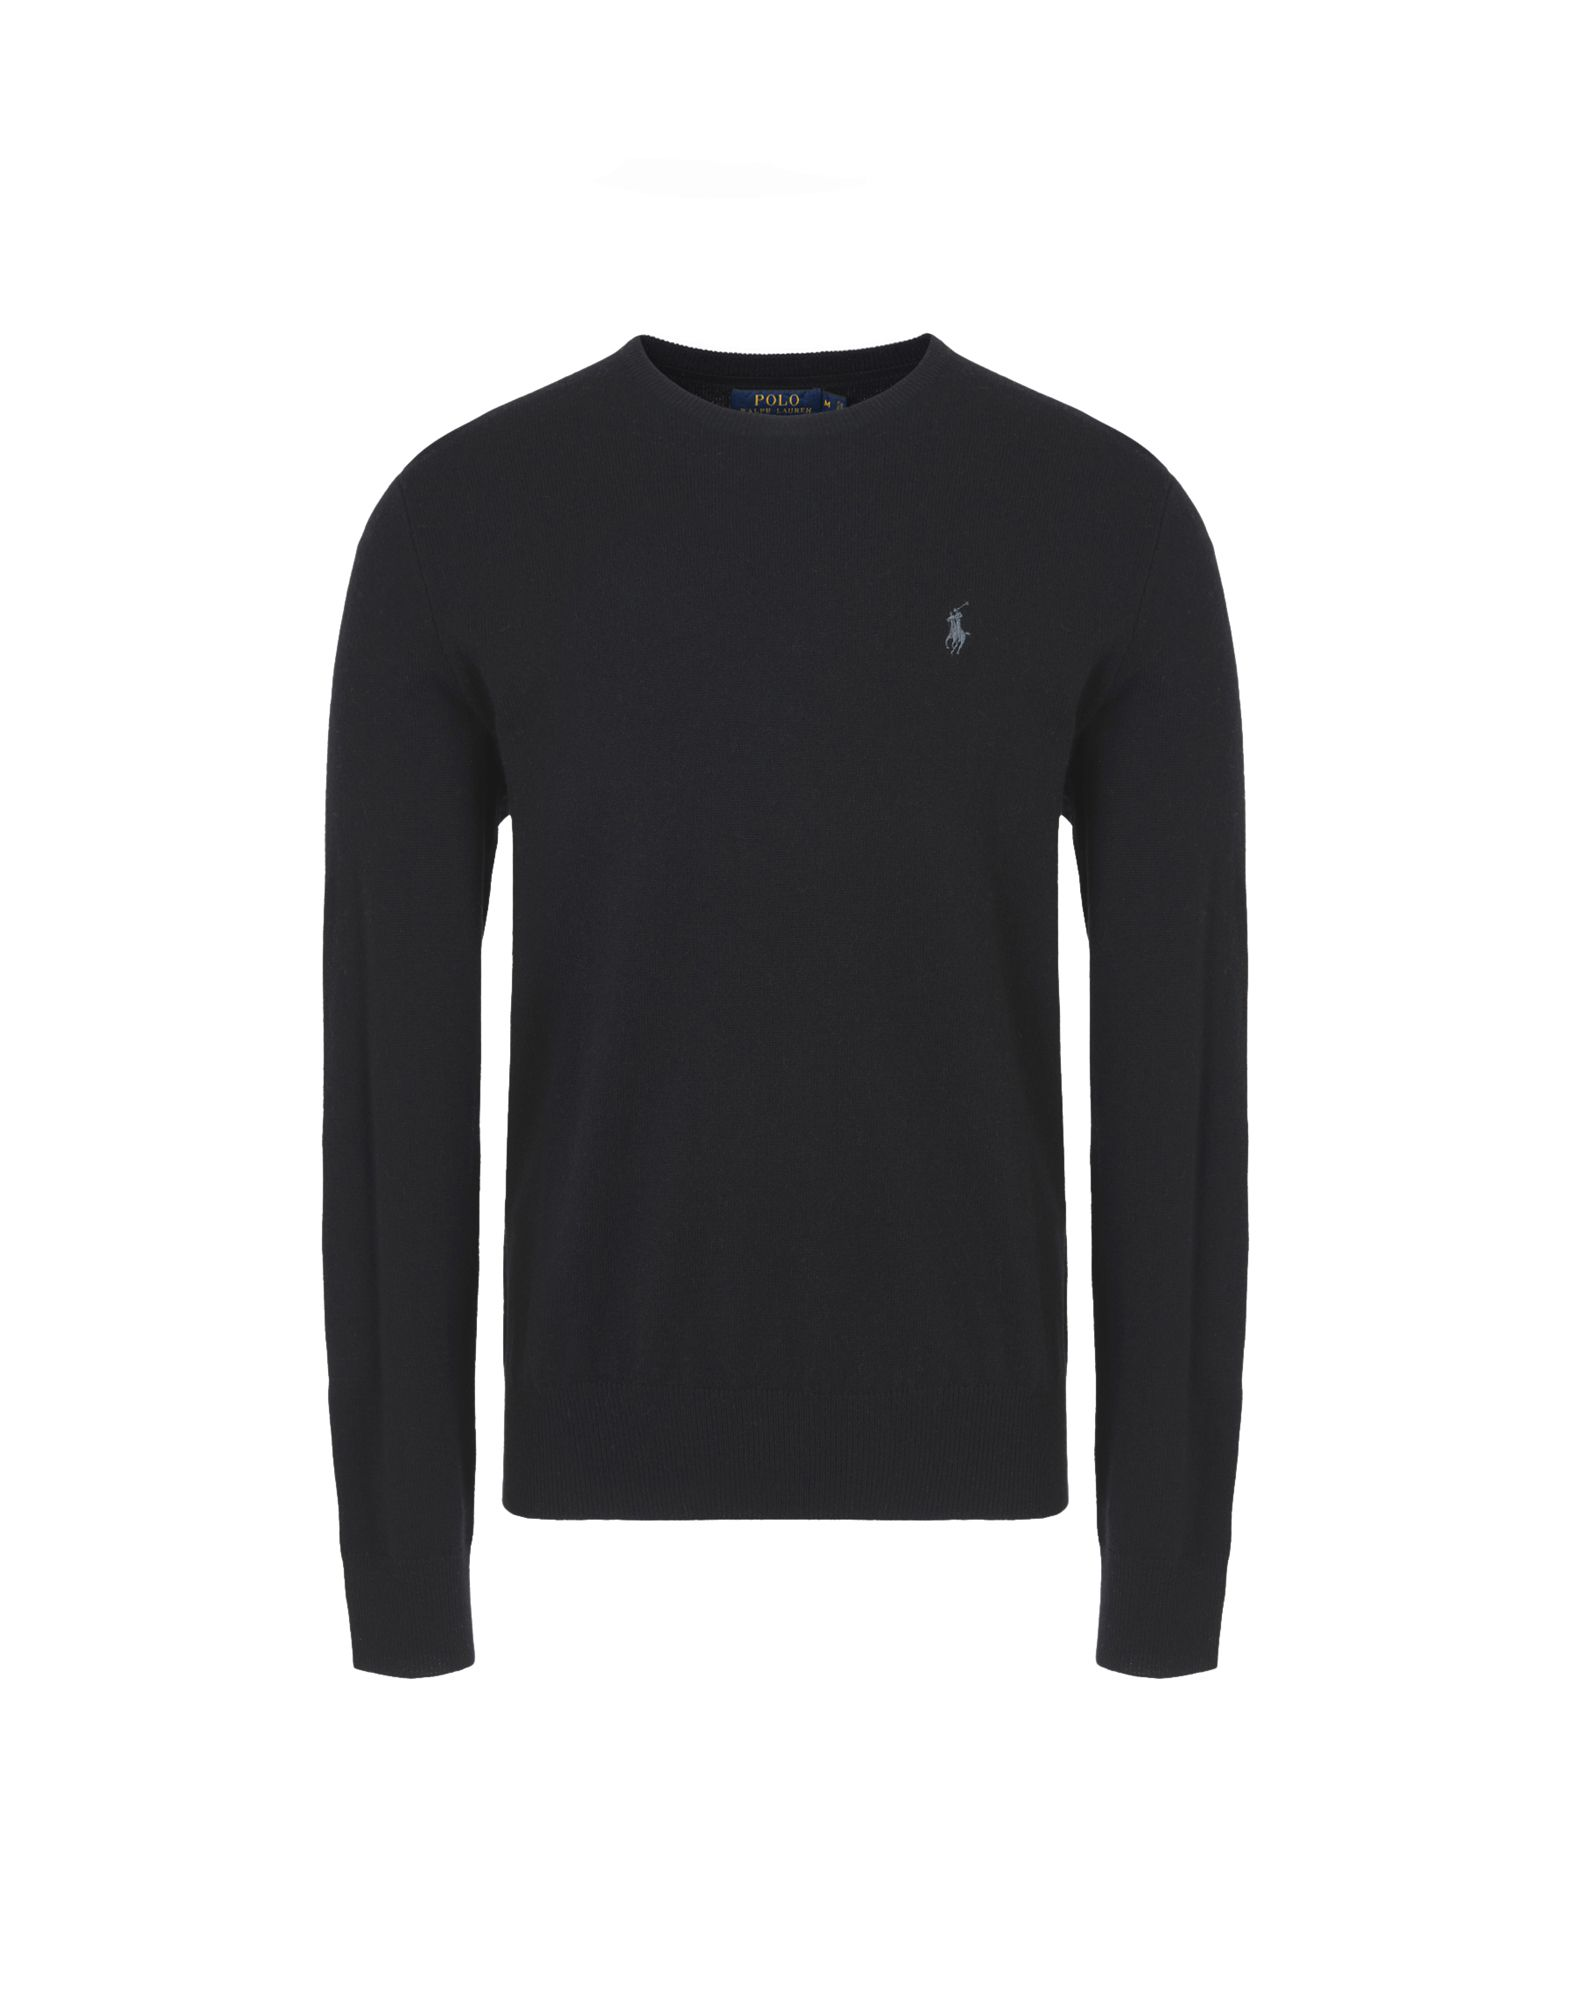 Pullover Polo Ralph Lauren Loryelle Wool Sweater - Uomo - Acquista online su